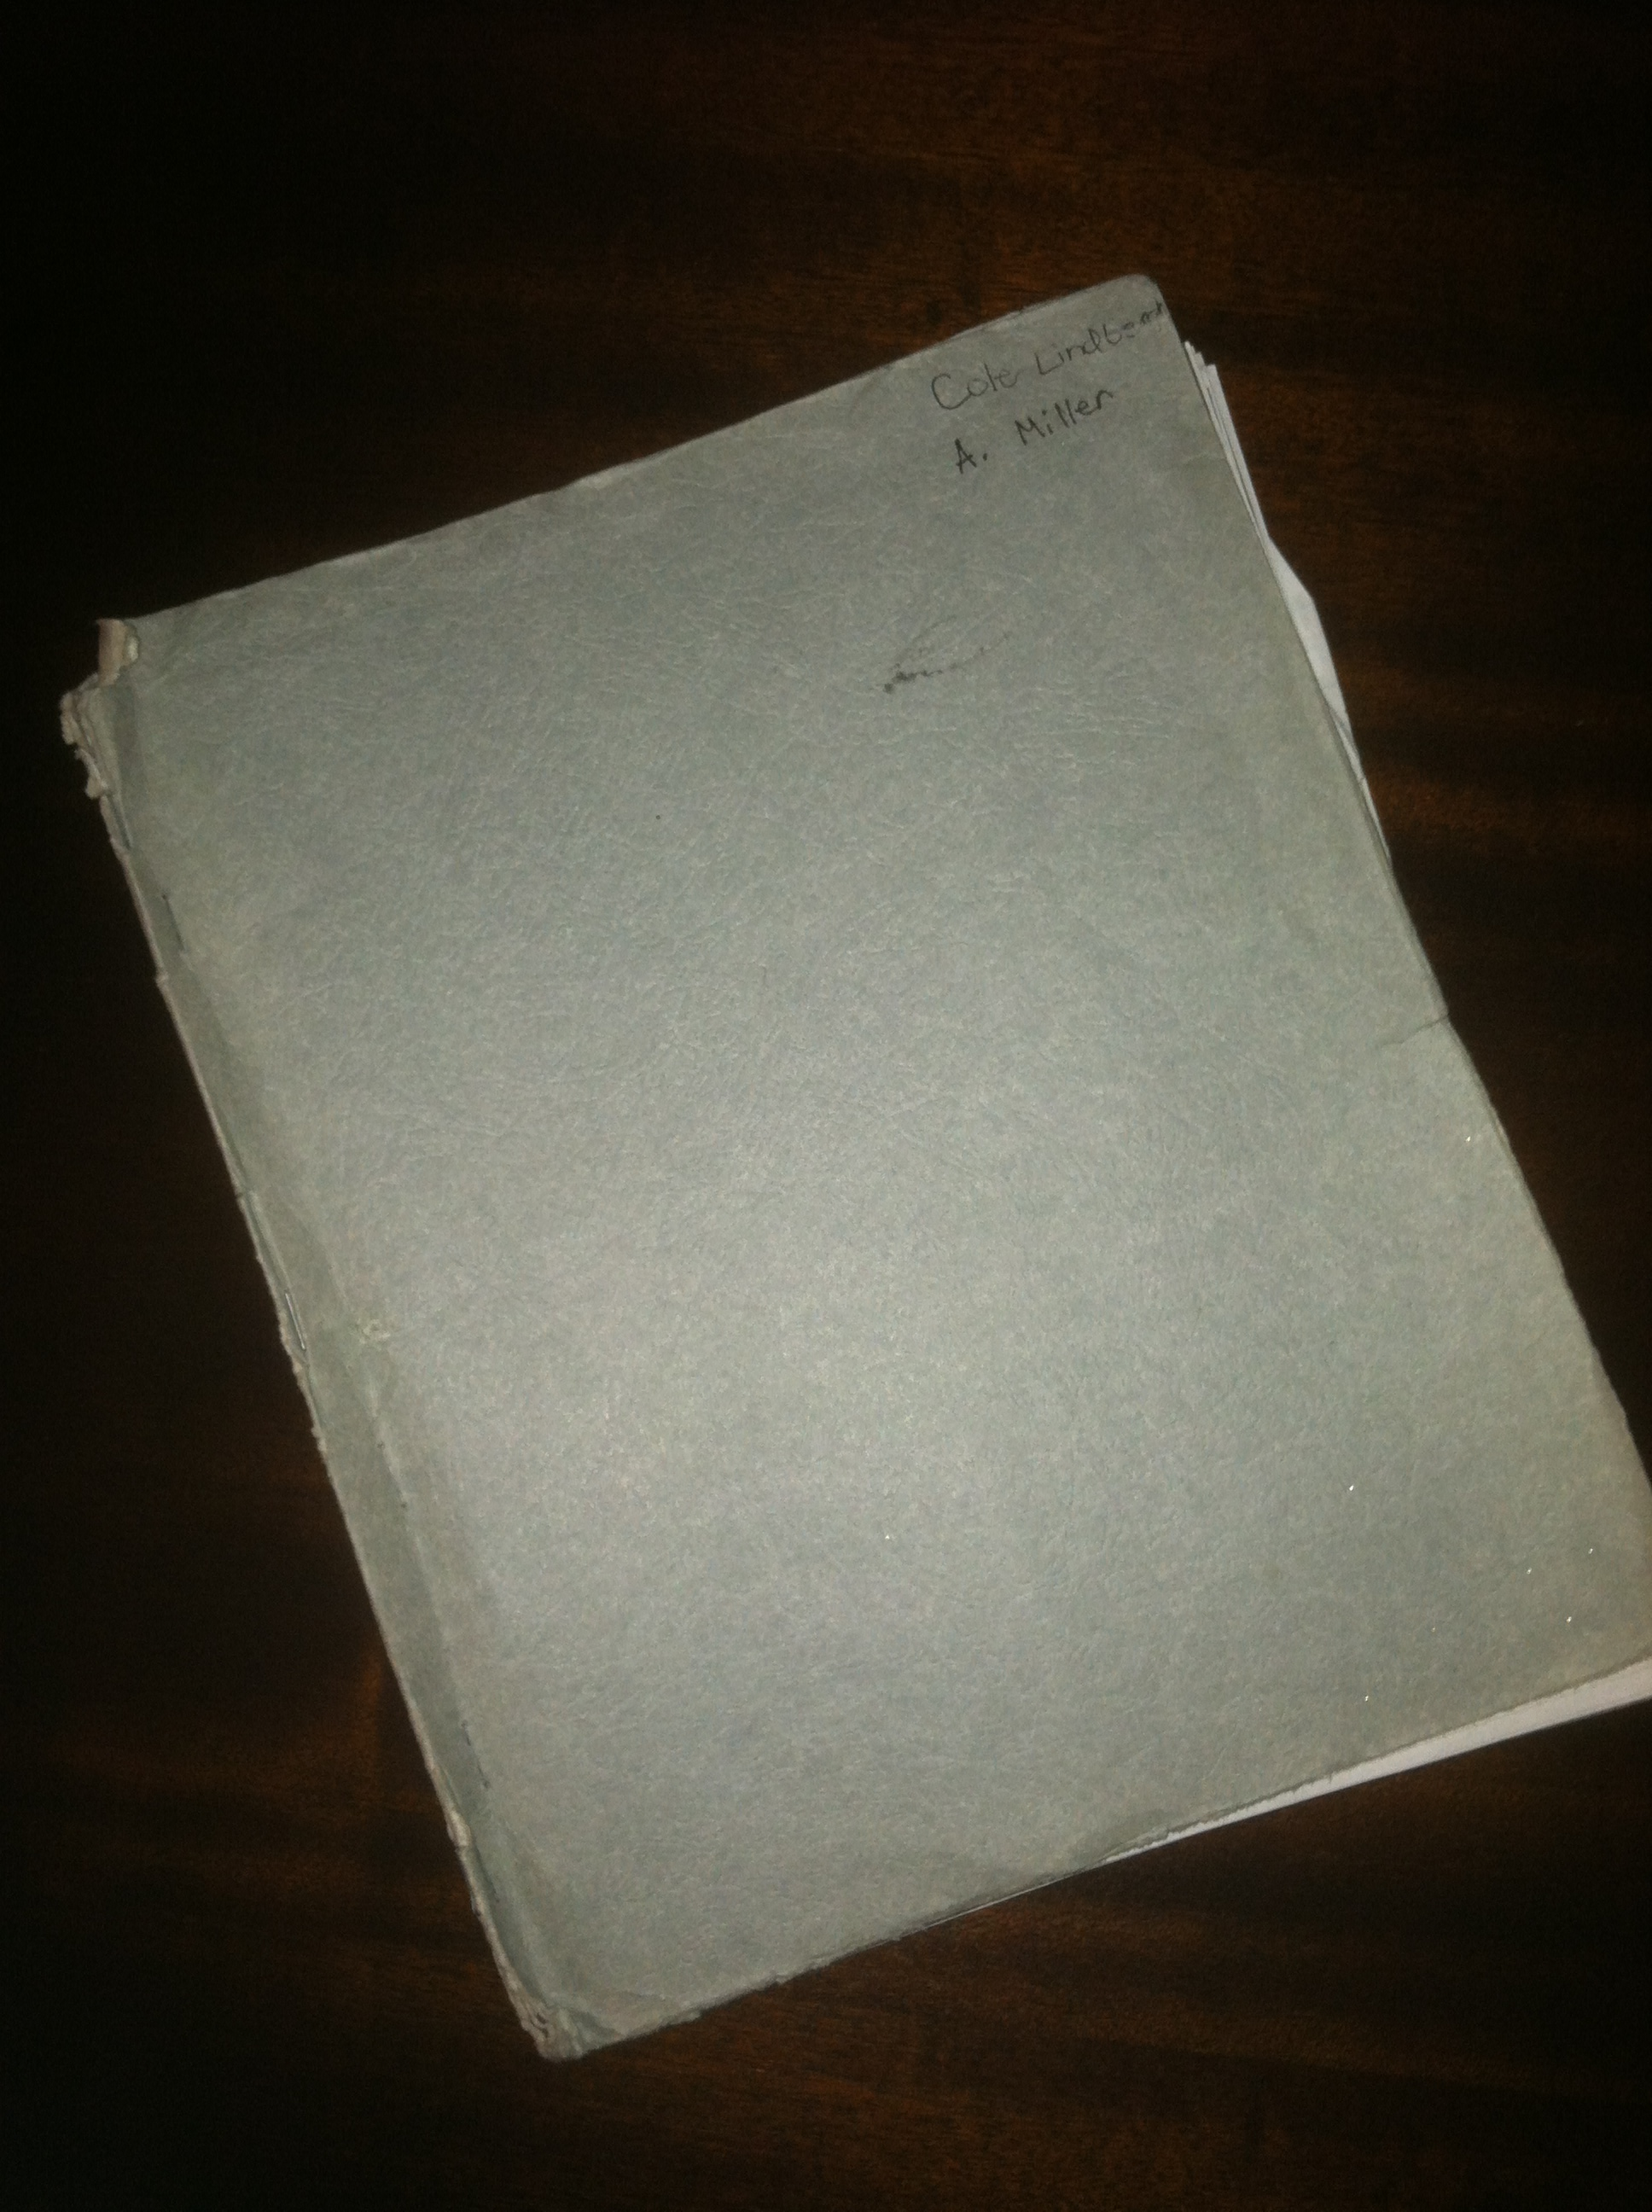 CLICK TO ENLARGE - The outside of Cole's 6th Grade Imagineering folder used from 1997/98 to dream up new amusement park rides.